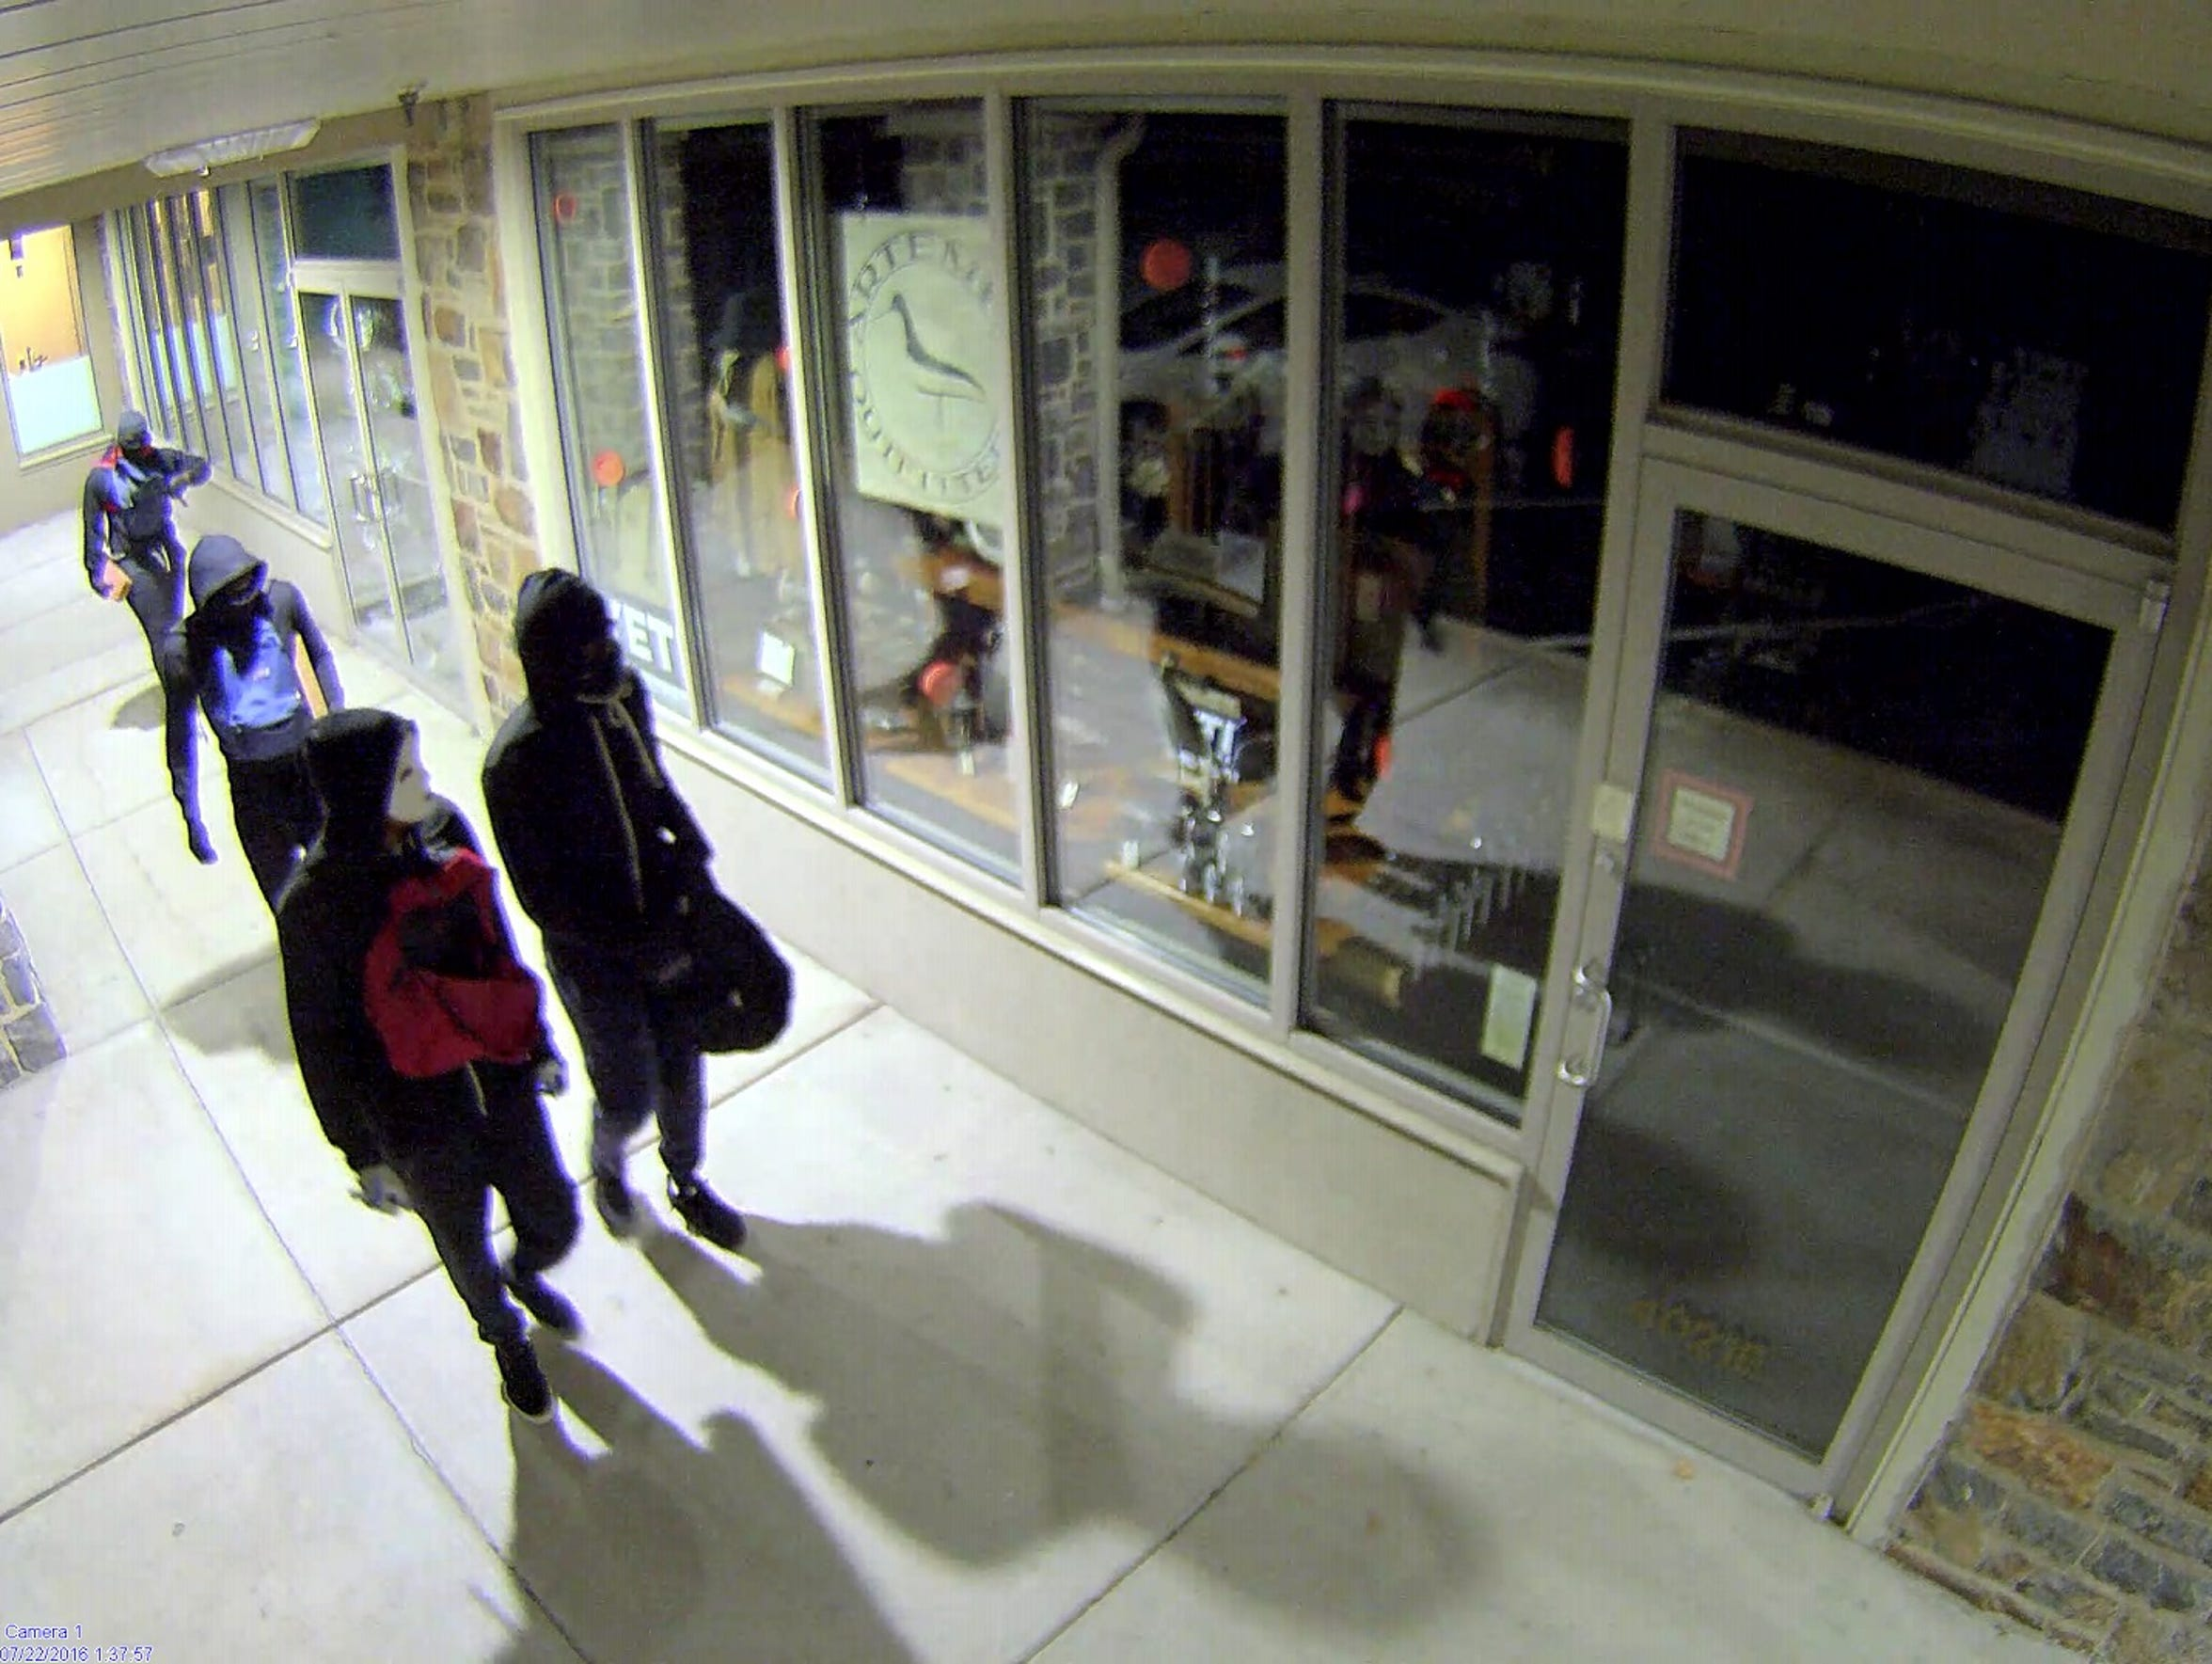 Four young men broke into Artemis Outfitters in Greenville